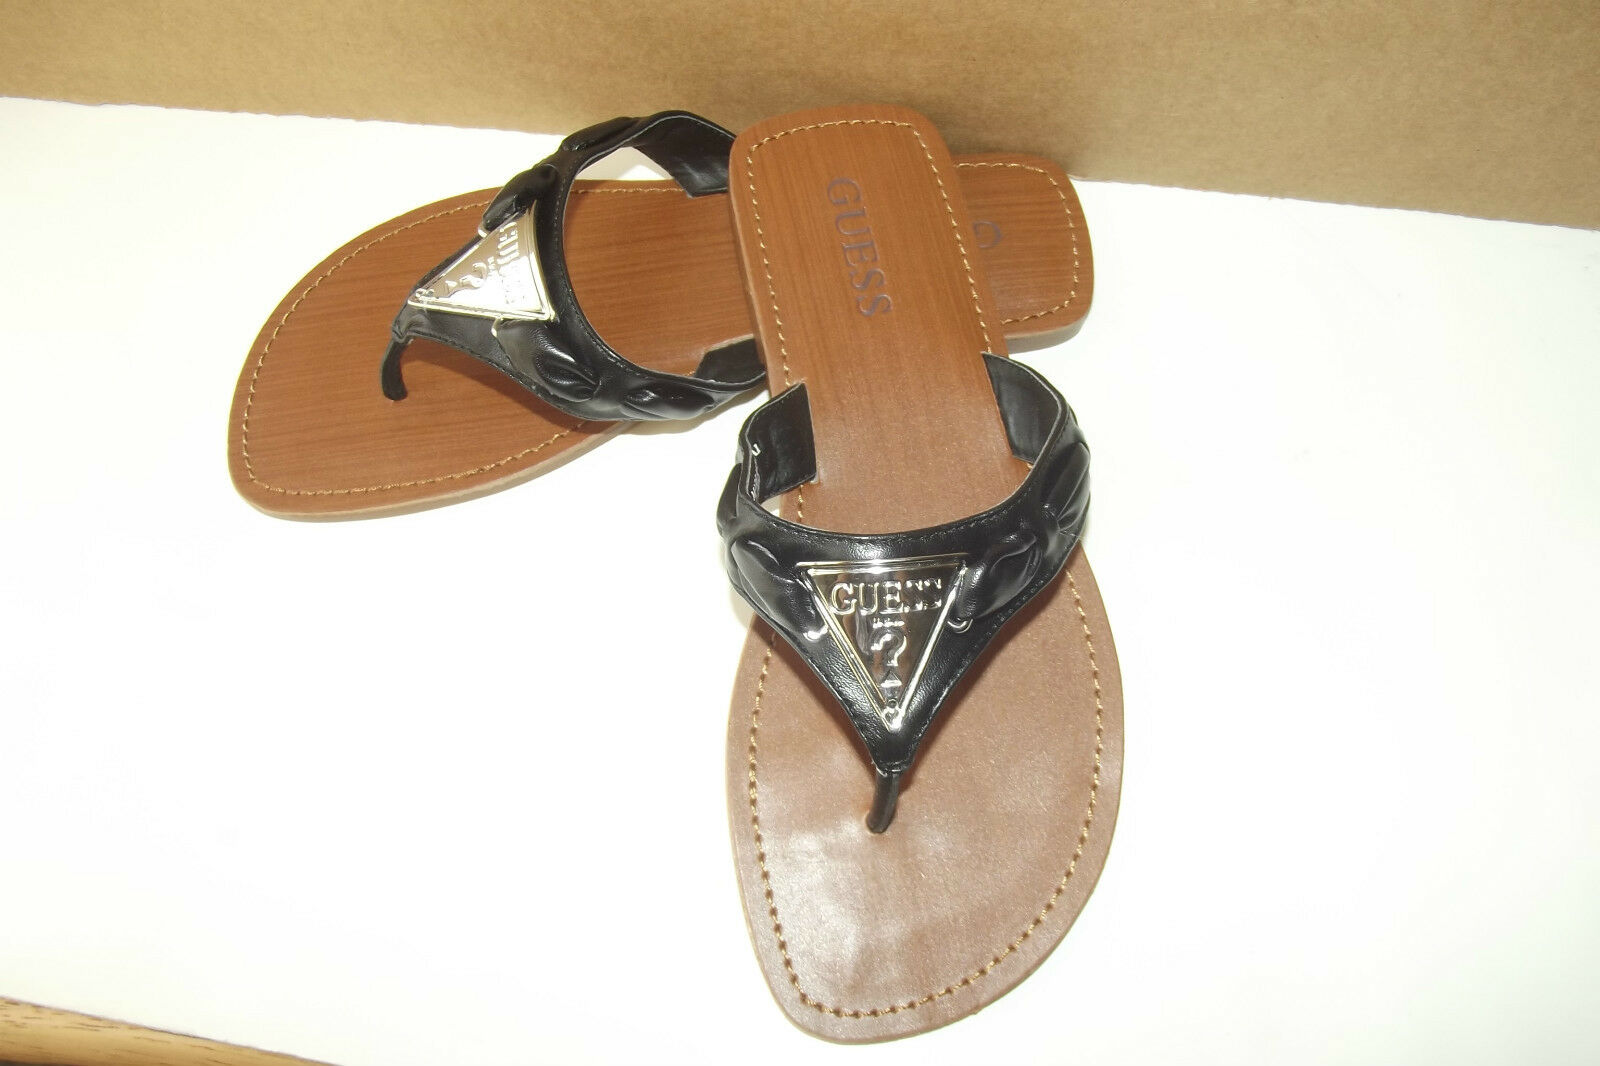 NEW WITH TAG GUESS GFCELY BLACK FLIP FLOPS SANDALS SHOES SZ. 6M LQQK